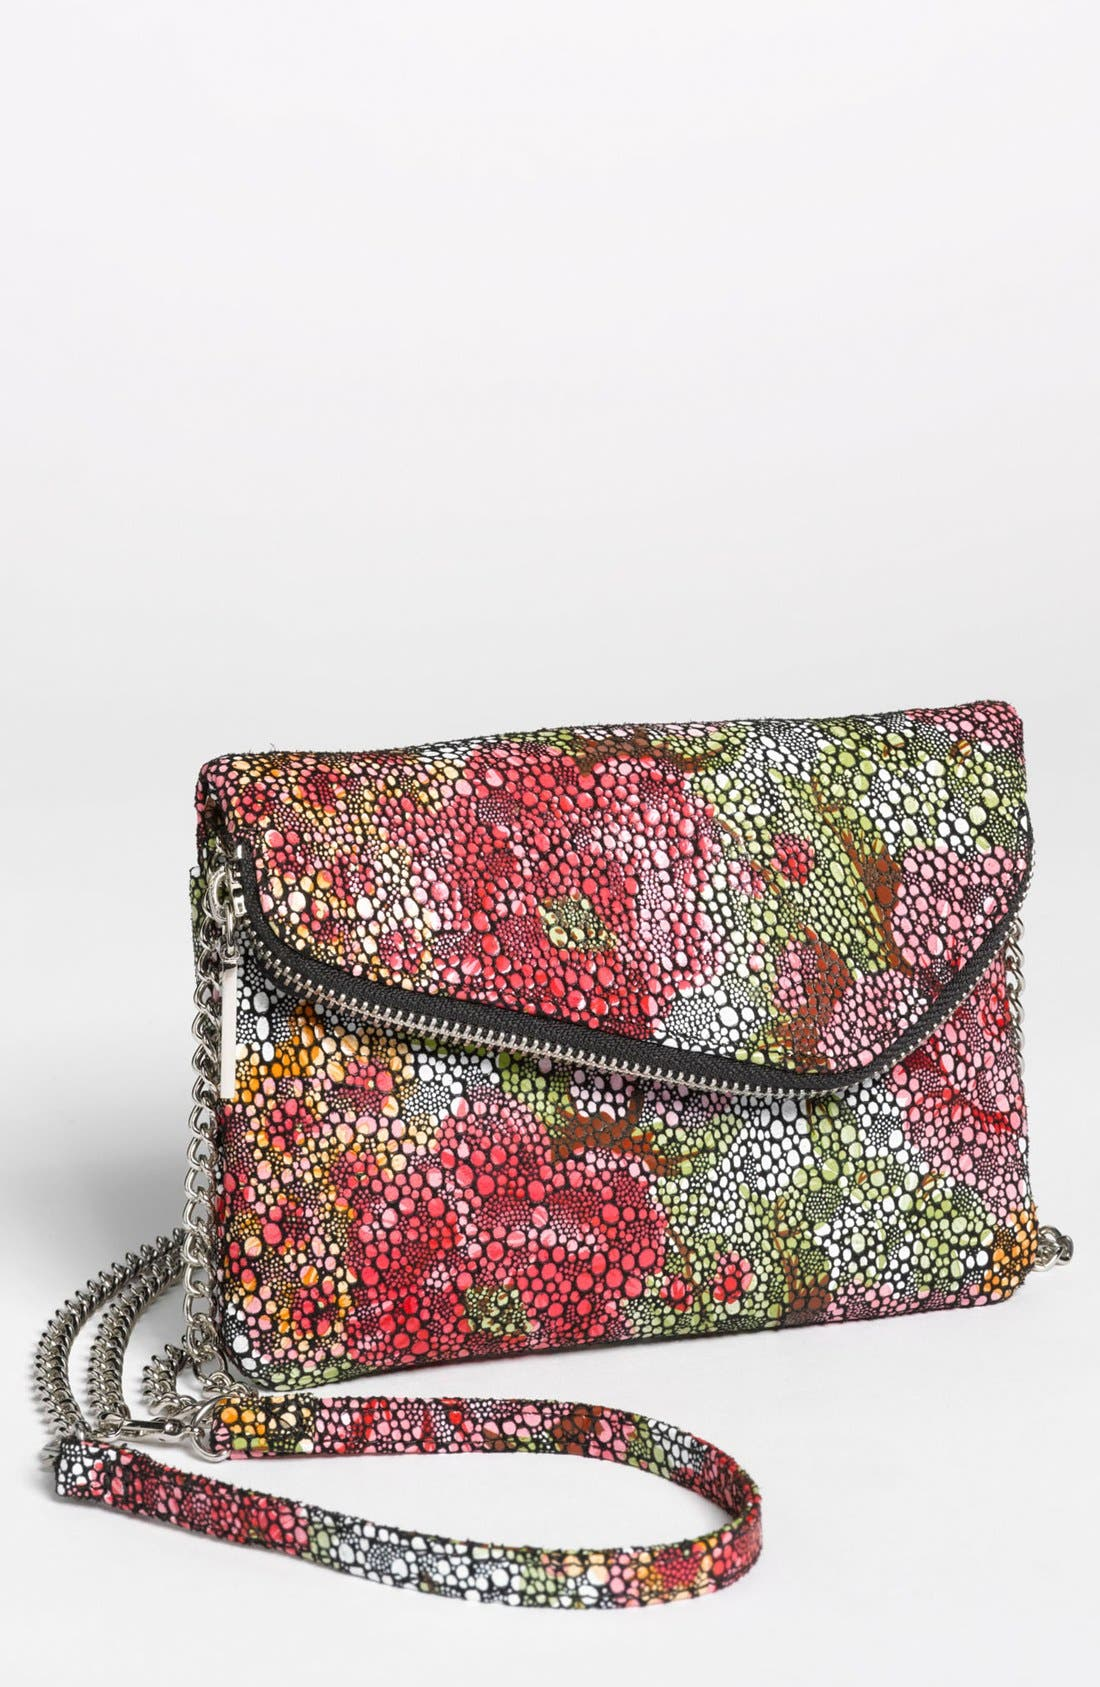 Alternate Image 1 Selected - Hobo 'Daria' Convertible Crossbody Bag, Small